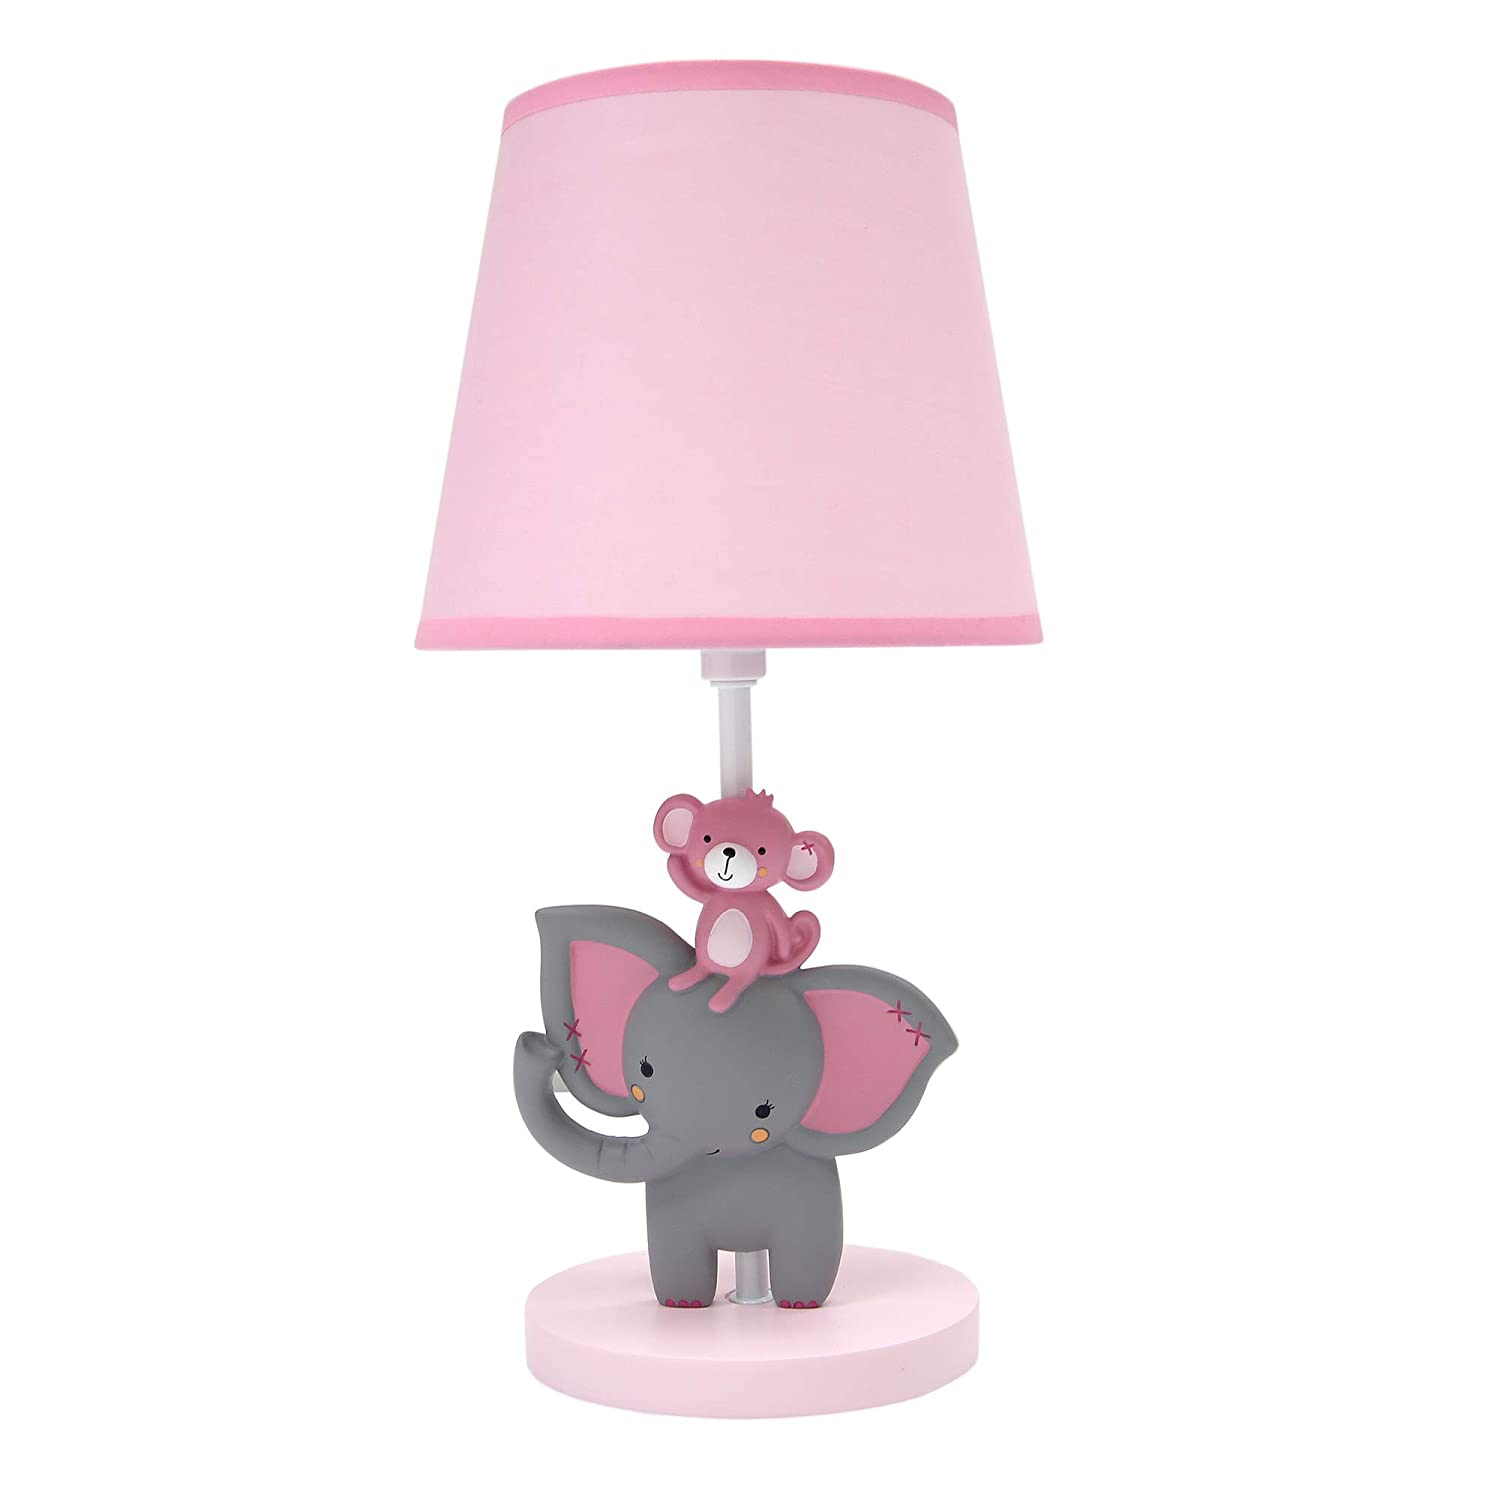 Bedtime Originals Twinkle Toes Lamp Shade Pink Bulb Max 64% OFF gift with